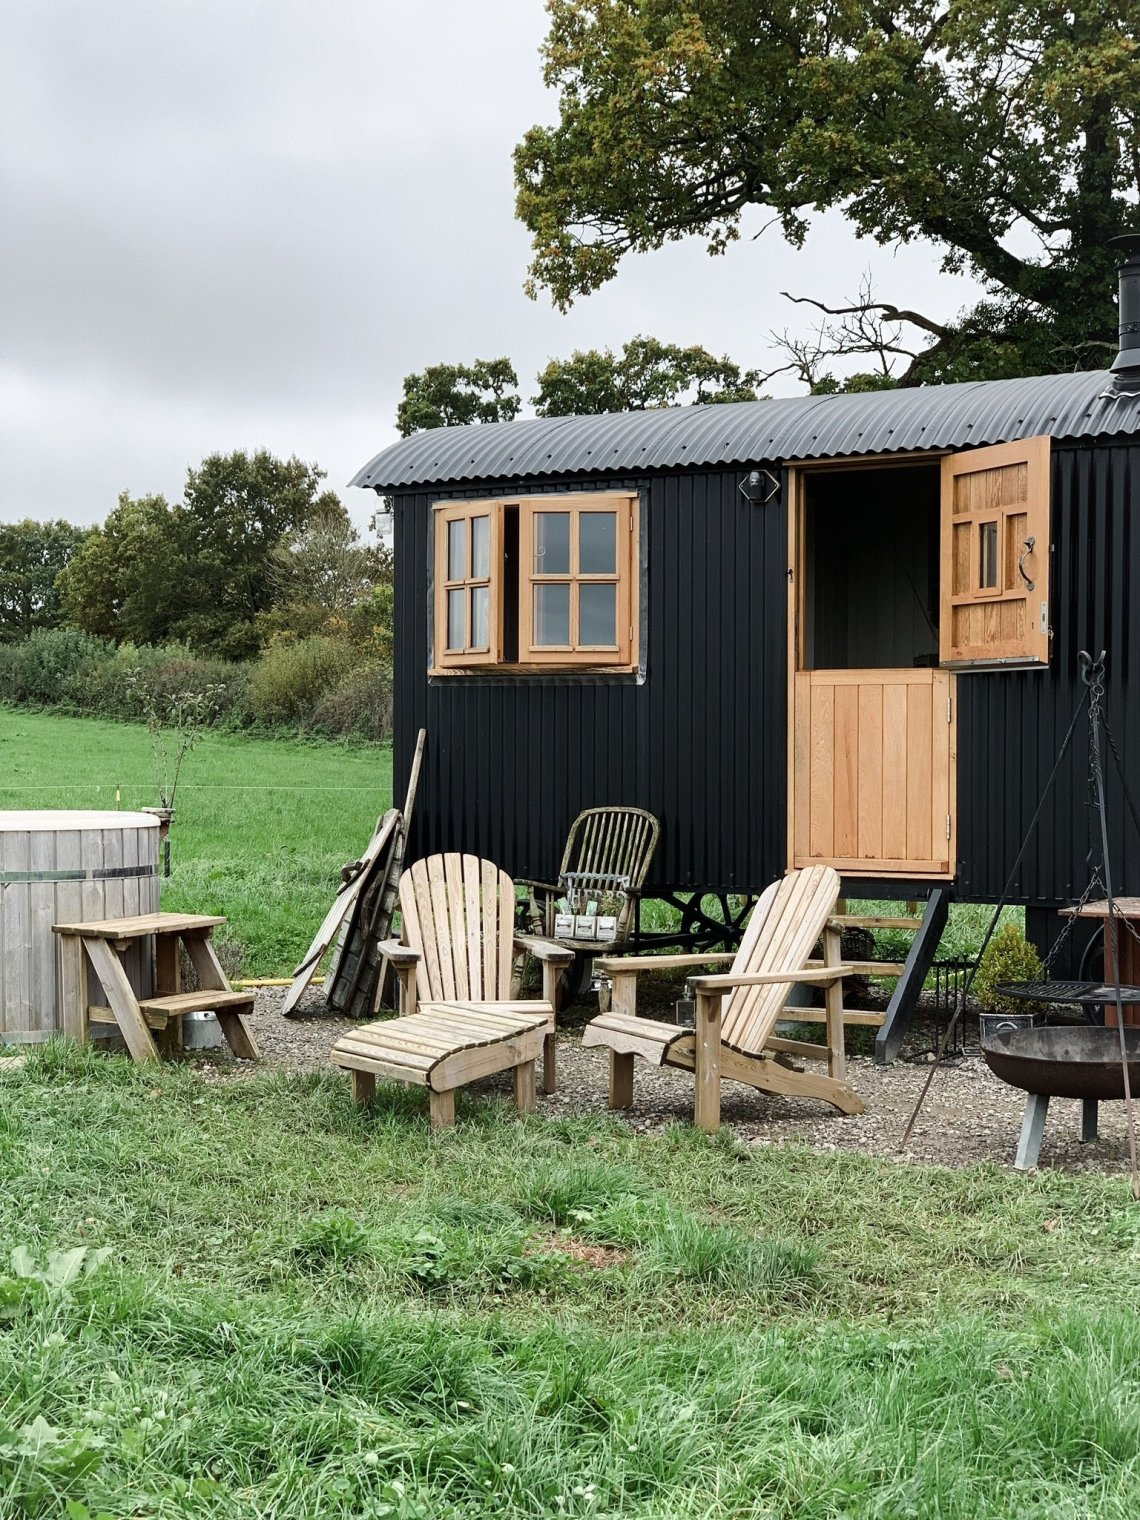 The Black Happy Hare shepherd hut with beautiful oak windows and door fire pit and Adirondack chairs